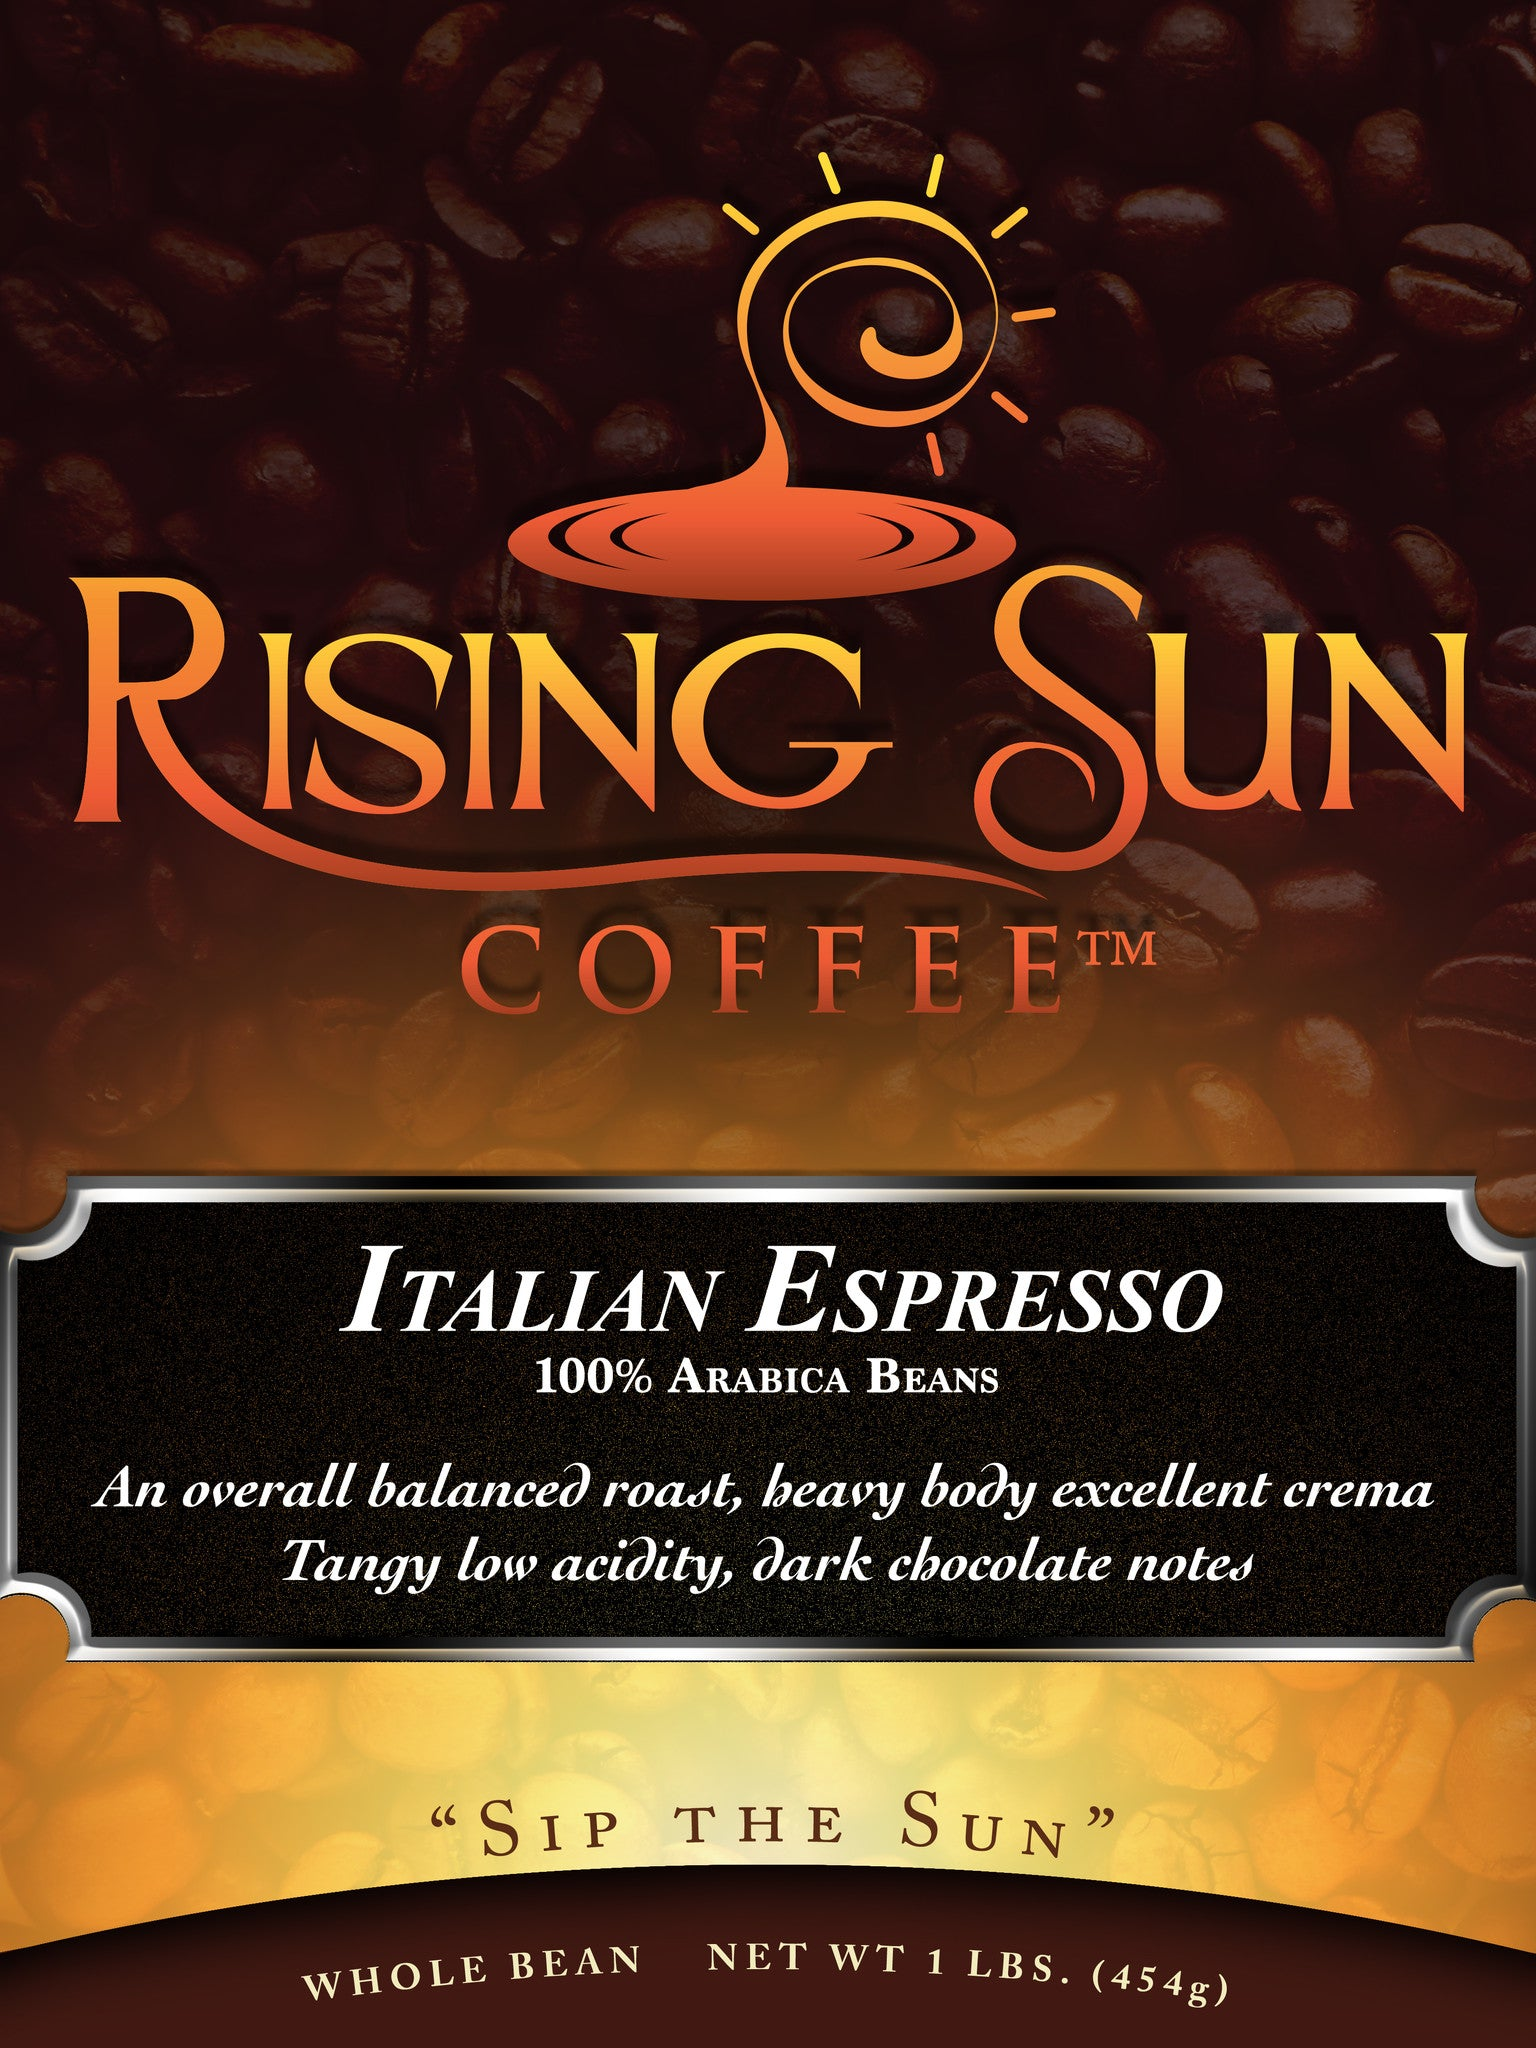 Espresso is coming soon!